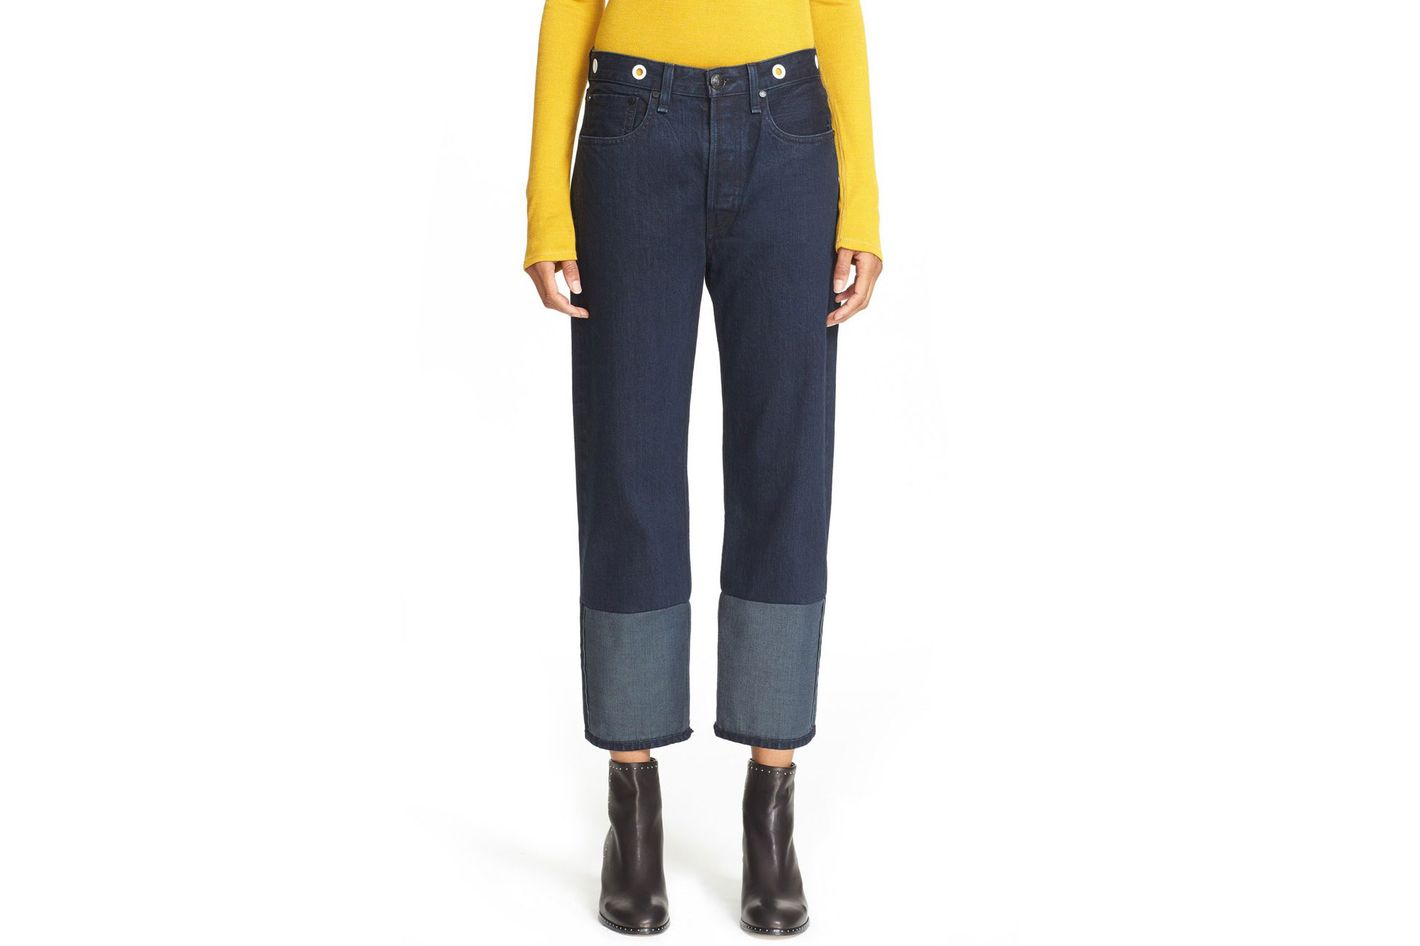 Rag & Bone RBW16 High Rise Crop Jeans